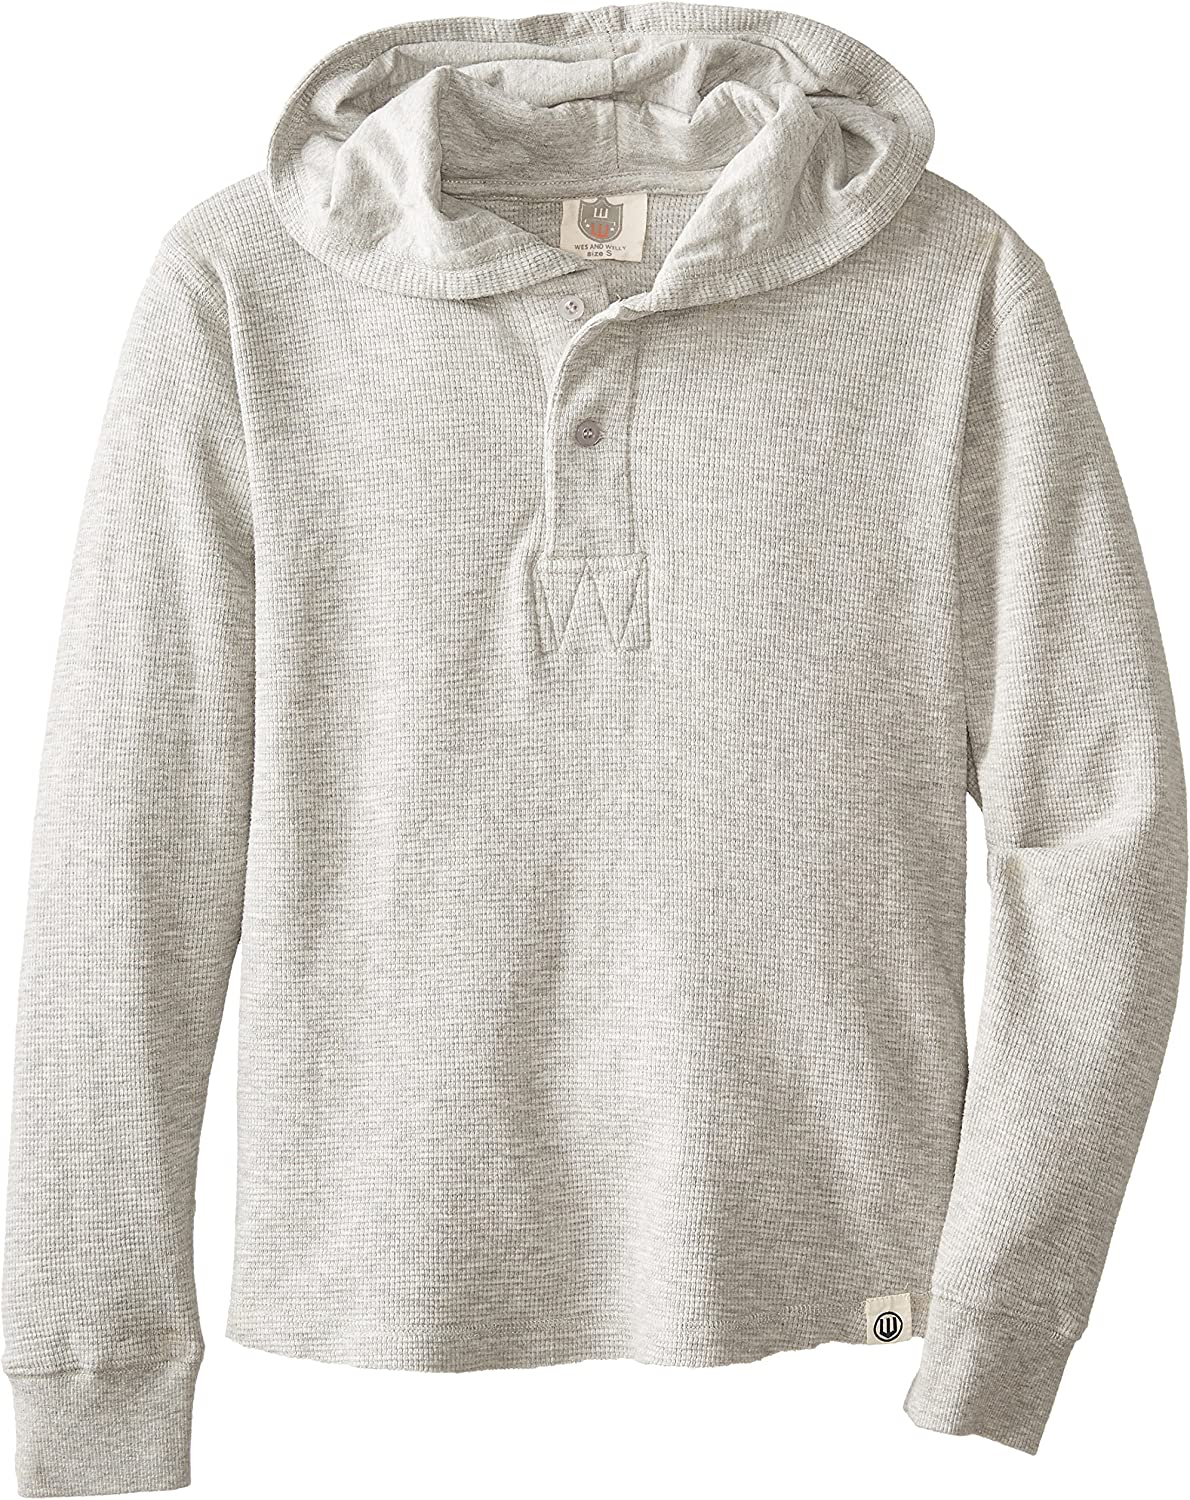 Wes & Willy Big Boys' Heather Thermal